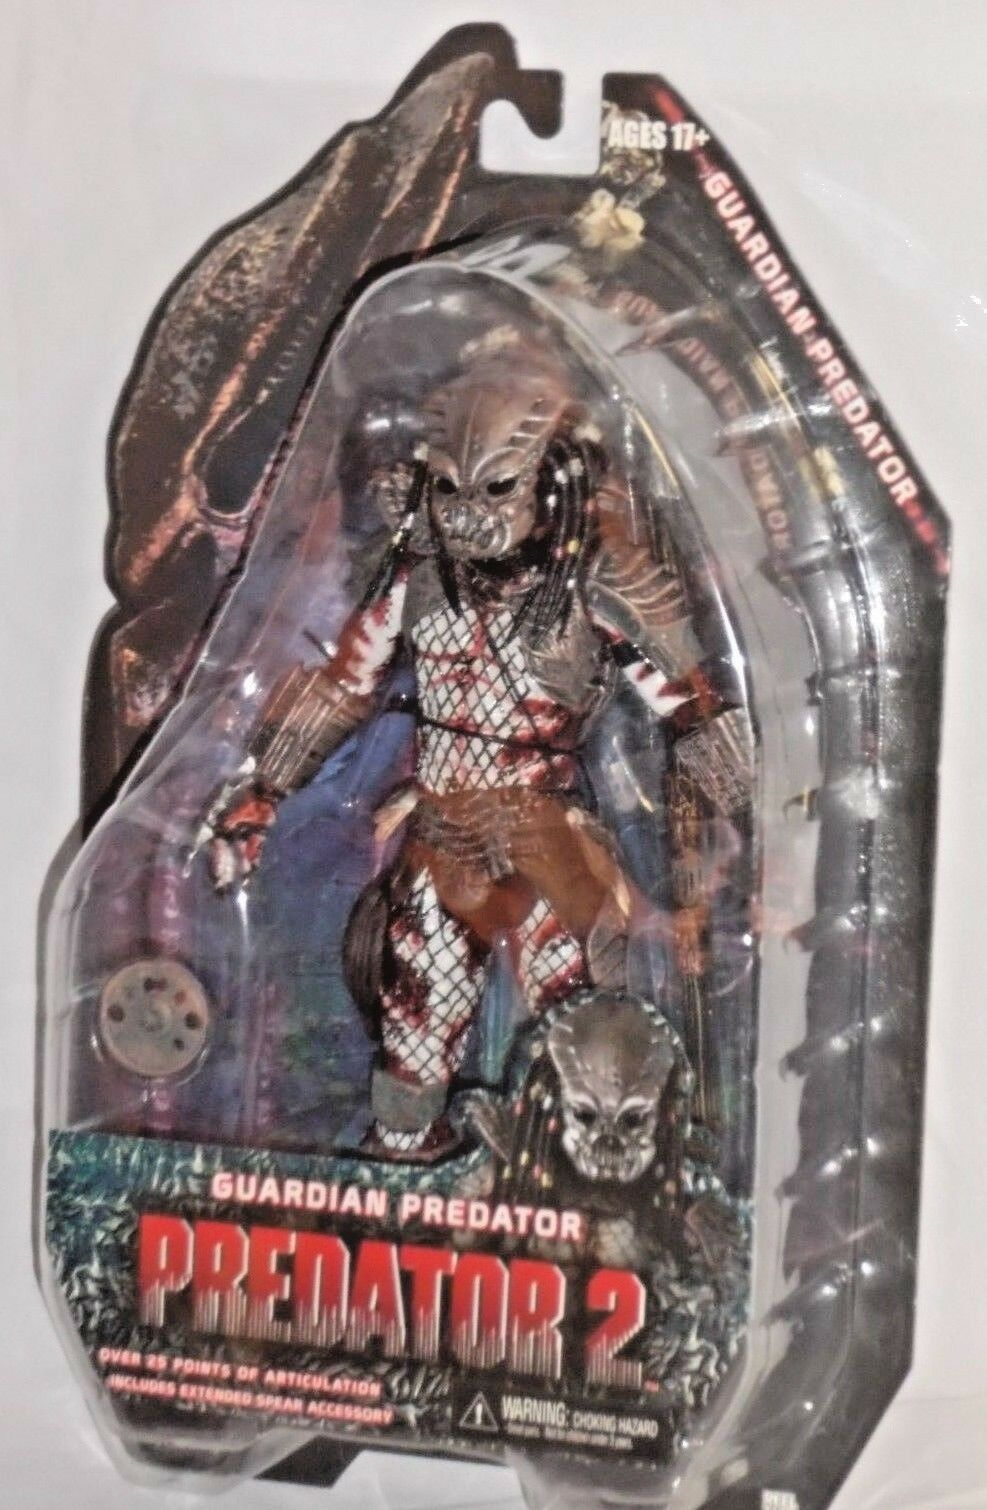 Misp neca protator 2 - serie 5 guardian kult - alien - horrorfilm  action - figur.